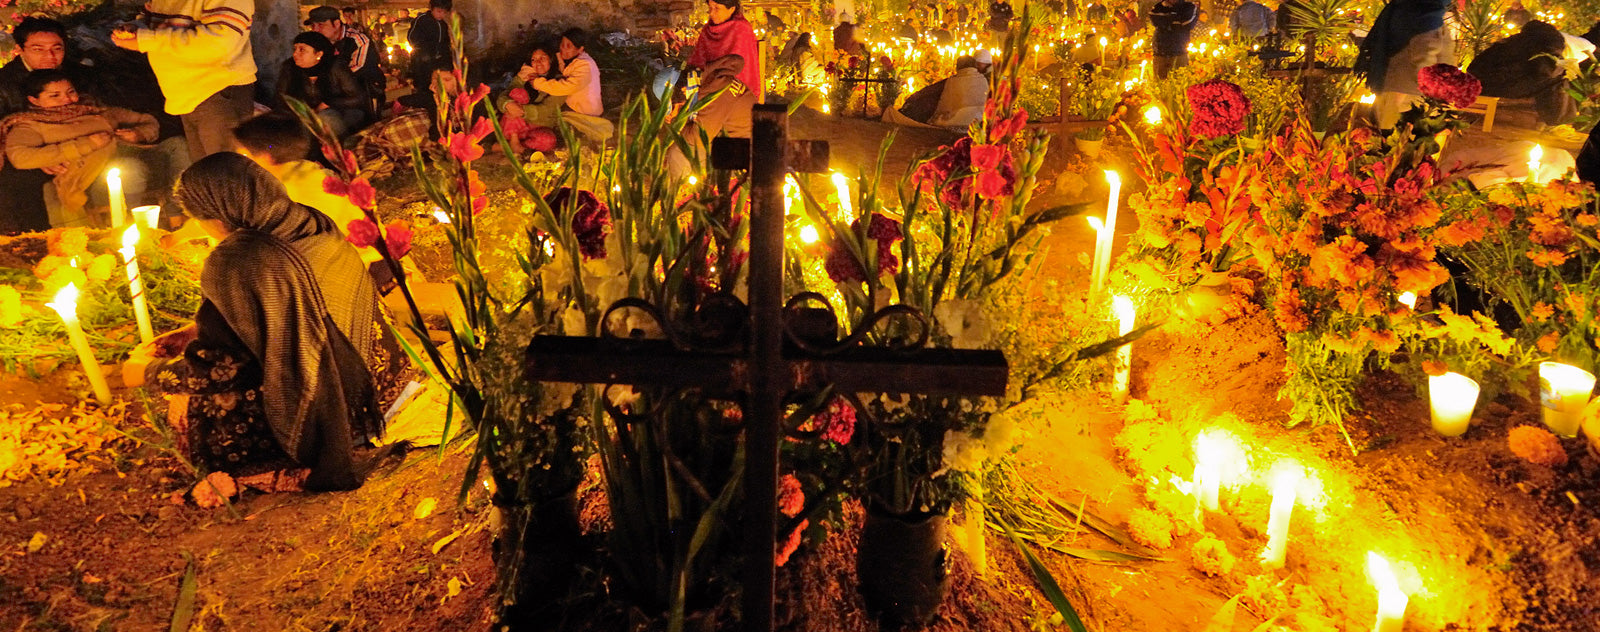 Day of the Dead Ceremony Mexico